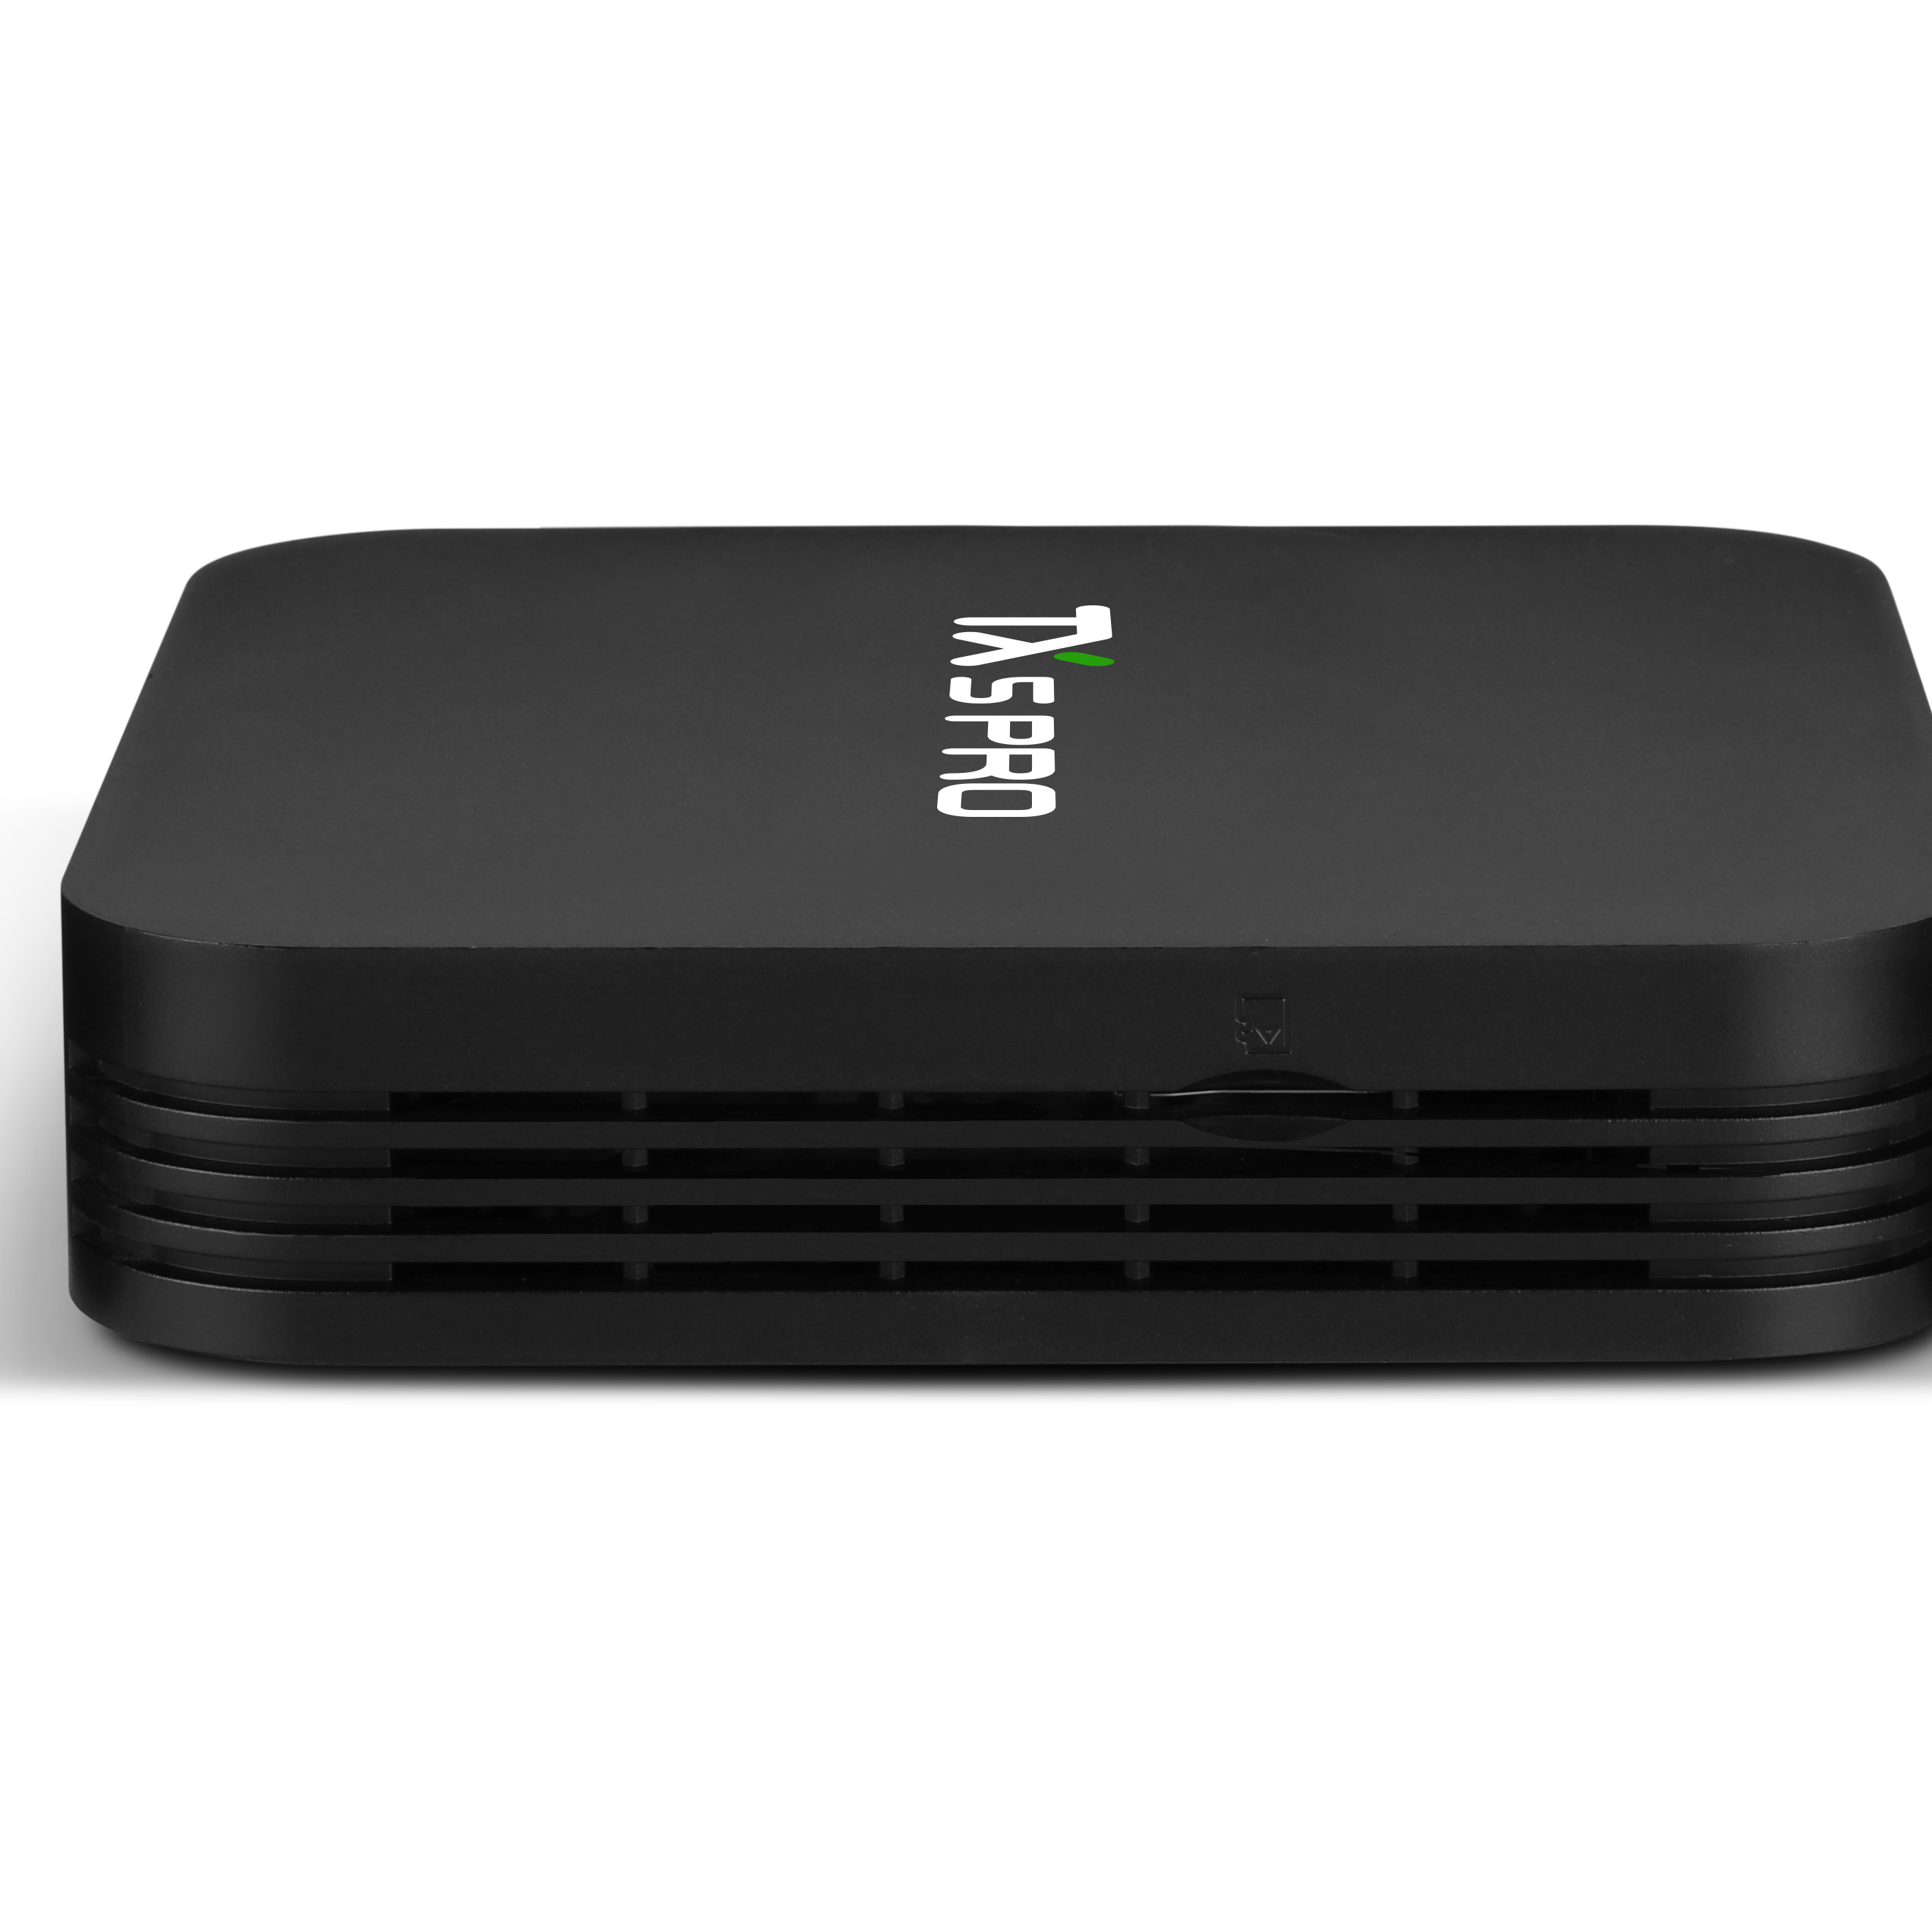 the cheapest amlogic S905X2 TV BOX TX5 PRO Android 8.1 OS 2G 16G 4G 32G DUAL WIFI BT 1000M Gigabit LAN UHD 4K FULL HD <strong>1080P</strong> <strong>D</strong>